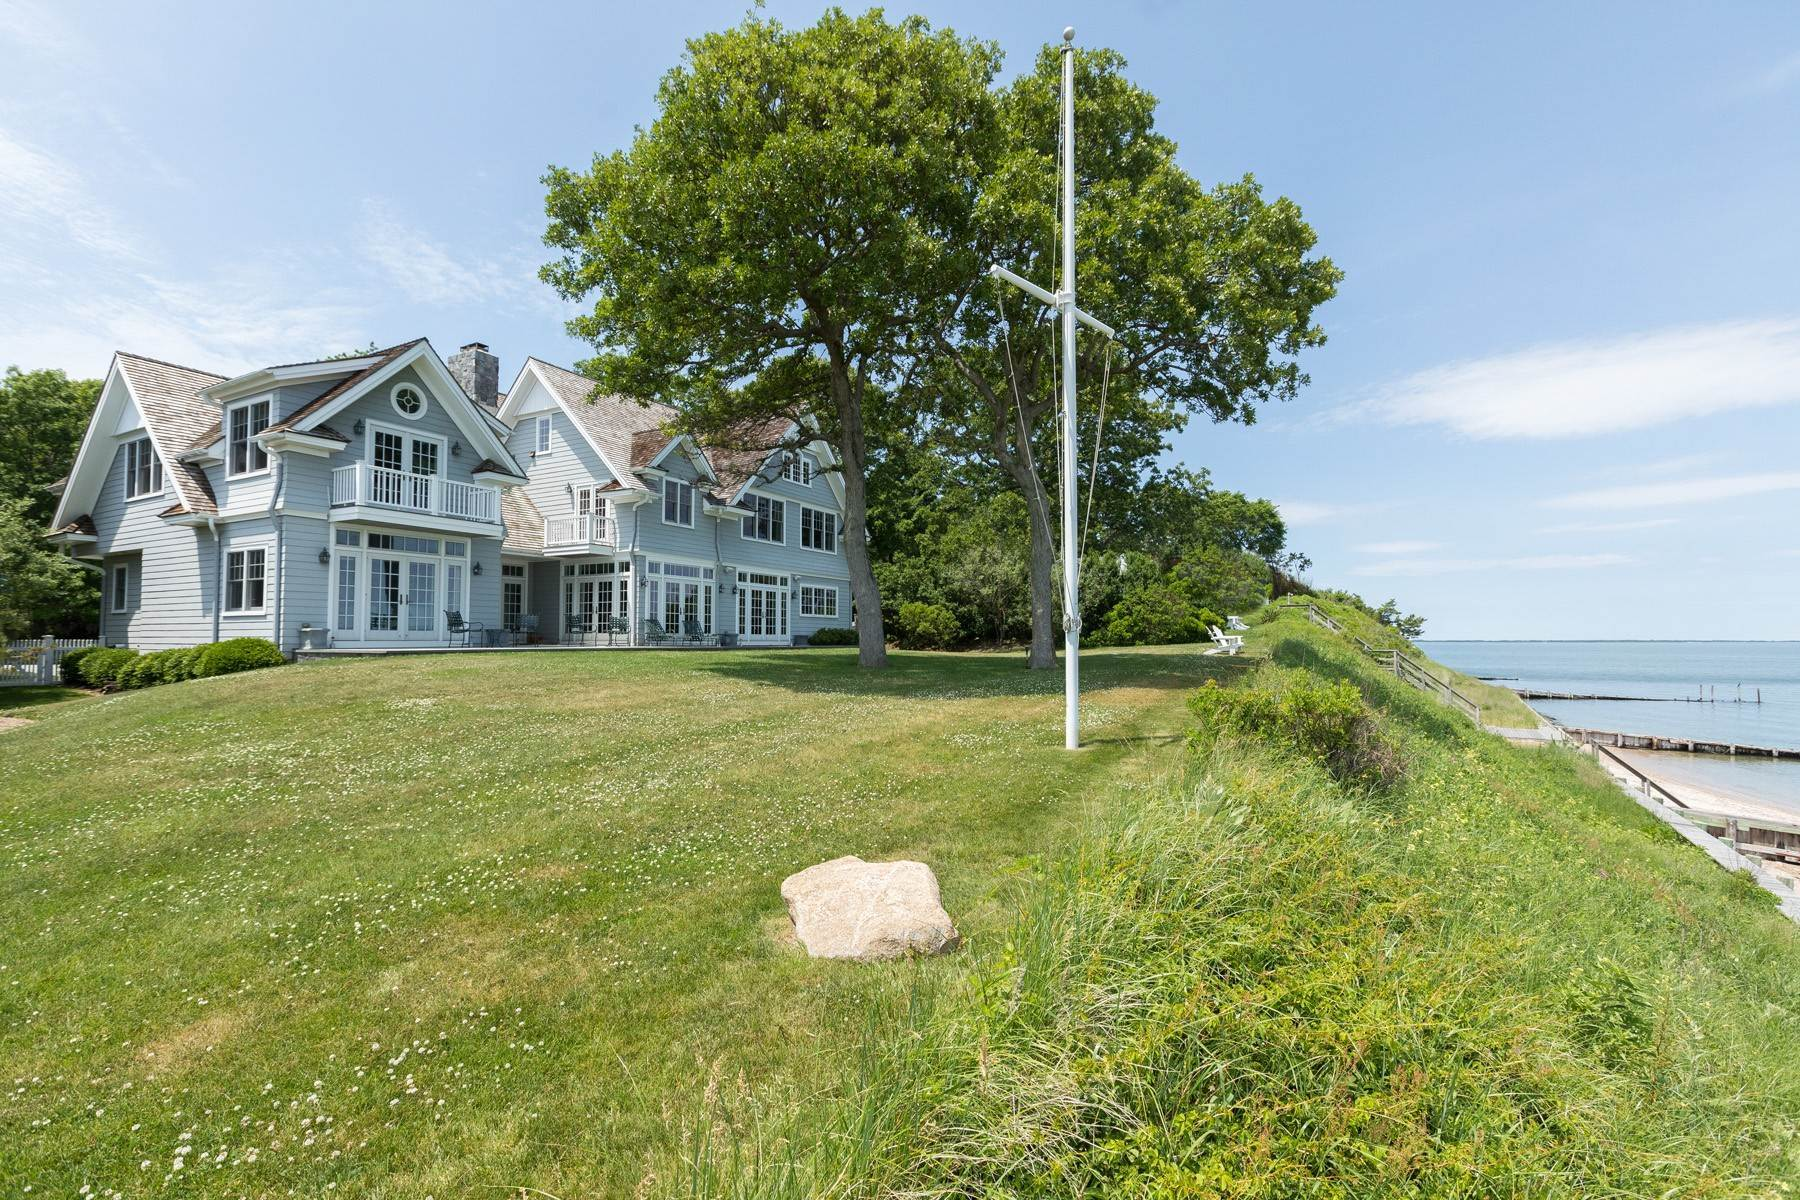 Single Family Homes for Sale at 189a Ram Island Drive, Shelter Island, Ny, 11964 189A Ram Island Drive Shelter Island, New York 11964 United States